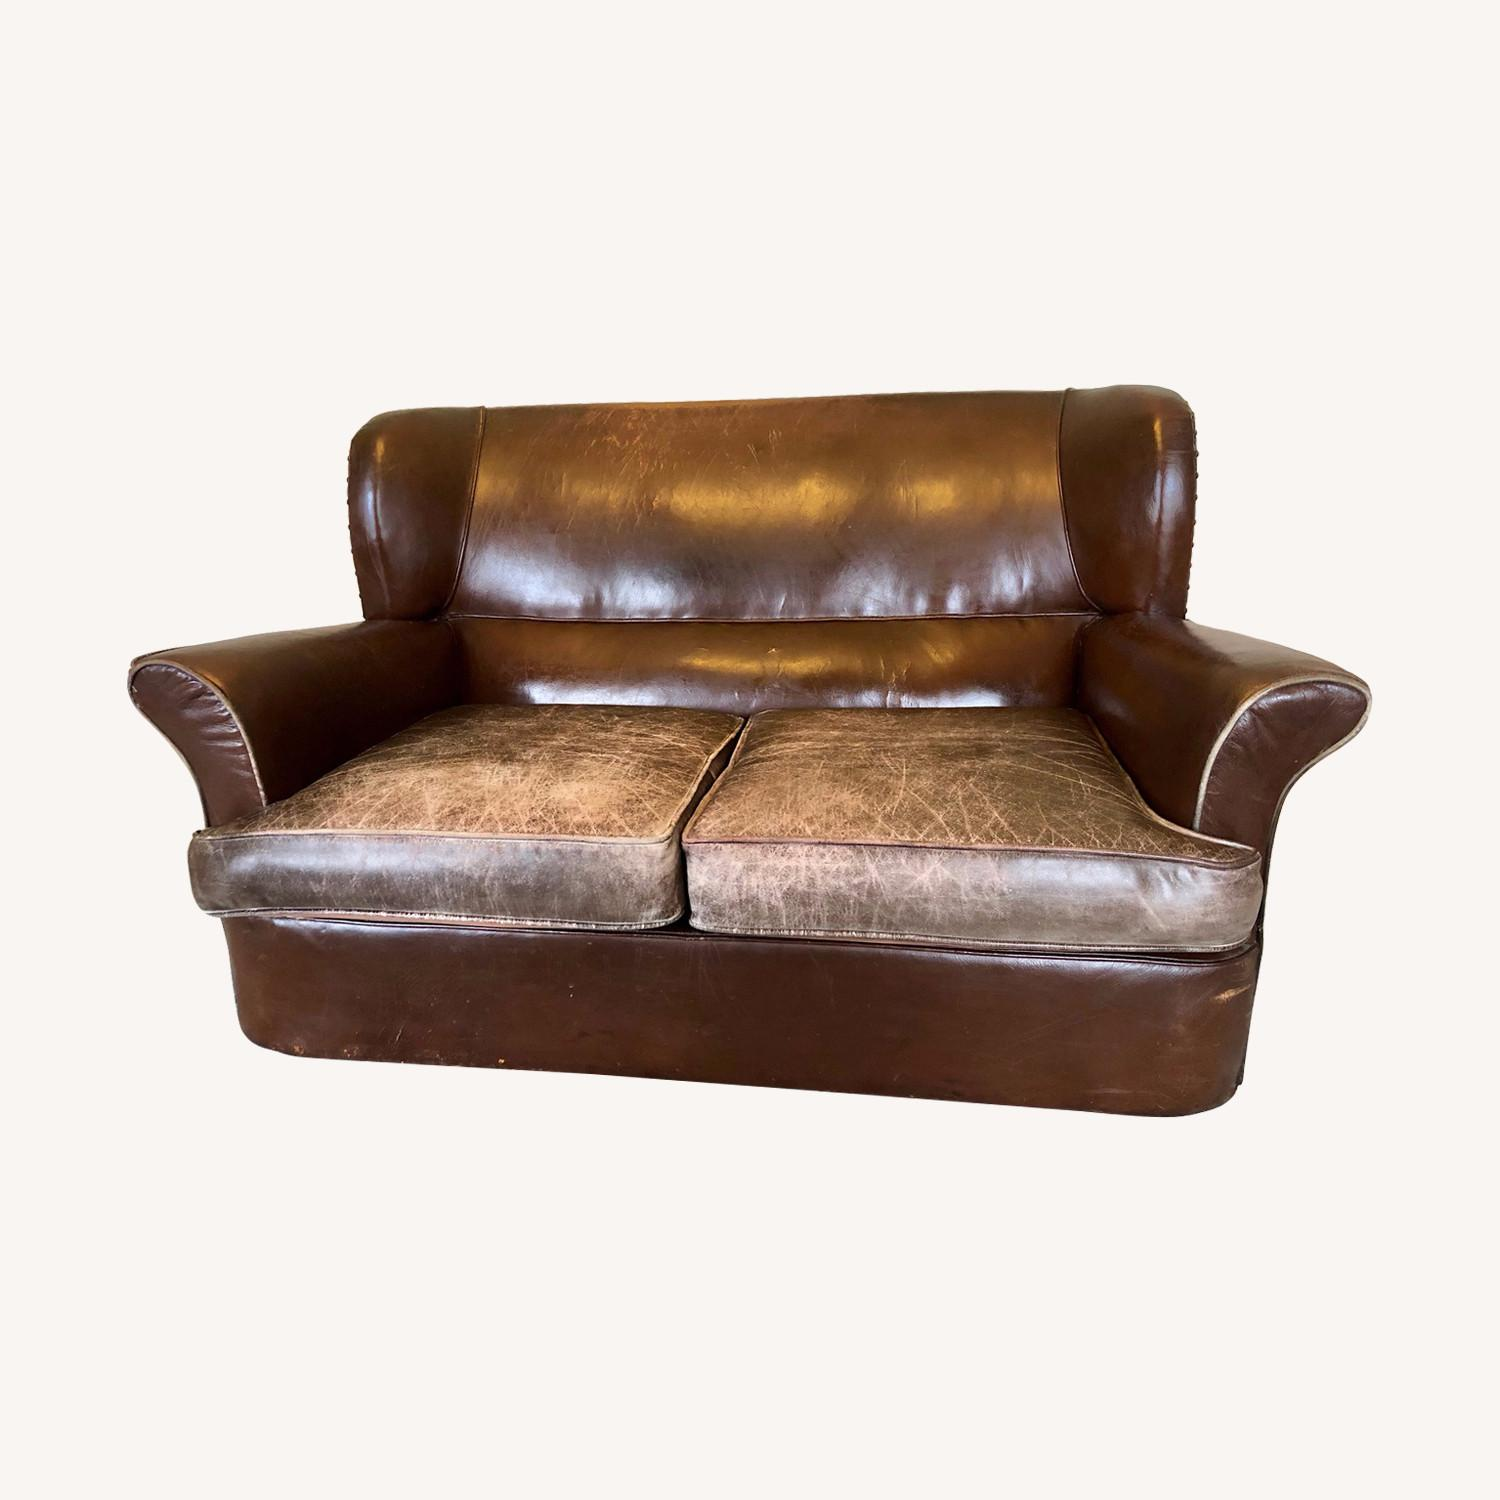 Vintage 1920s French Leather Sofa - image-0